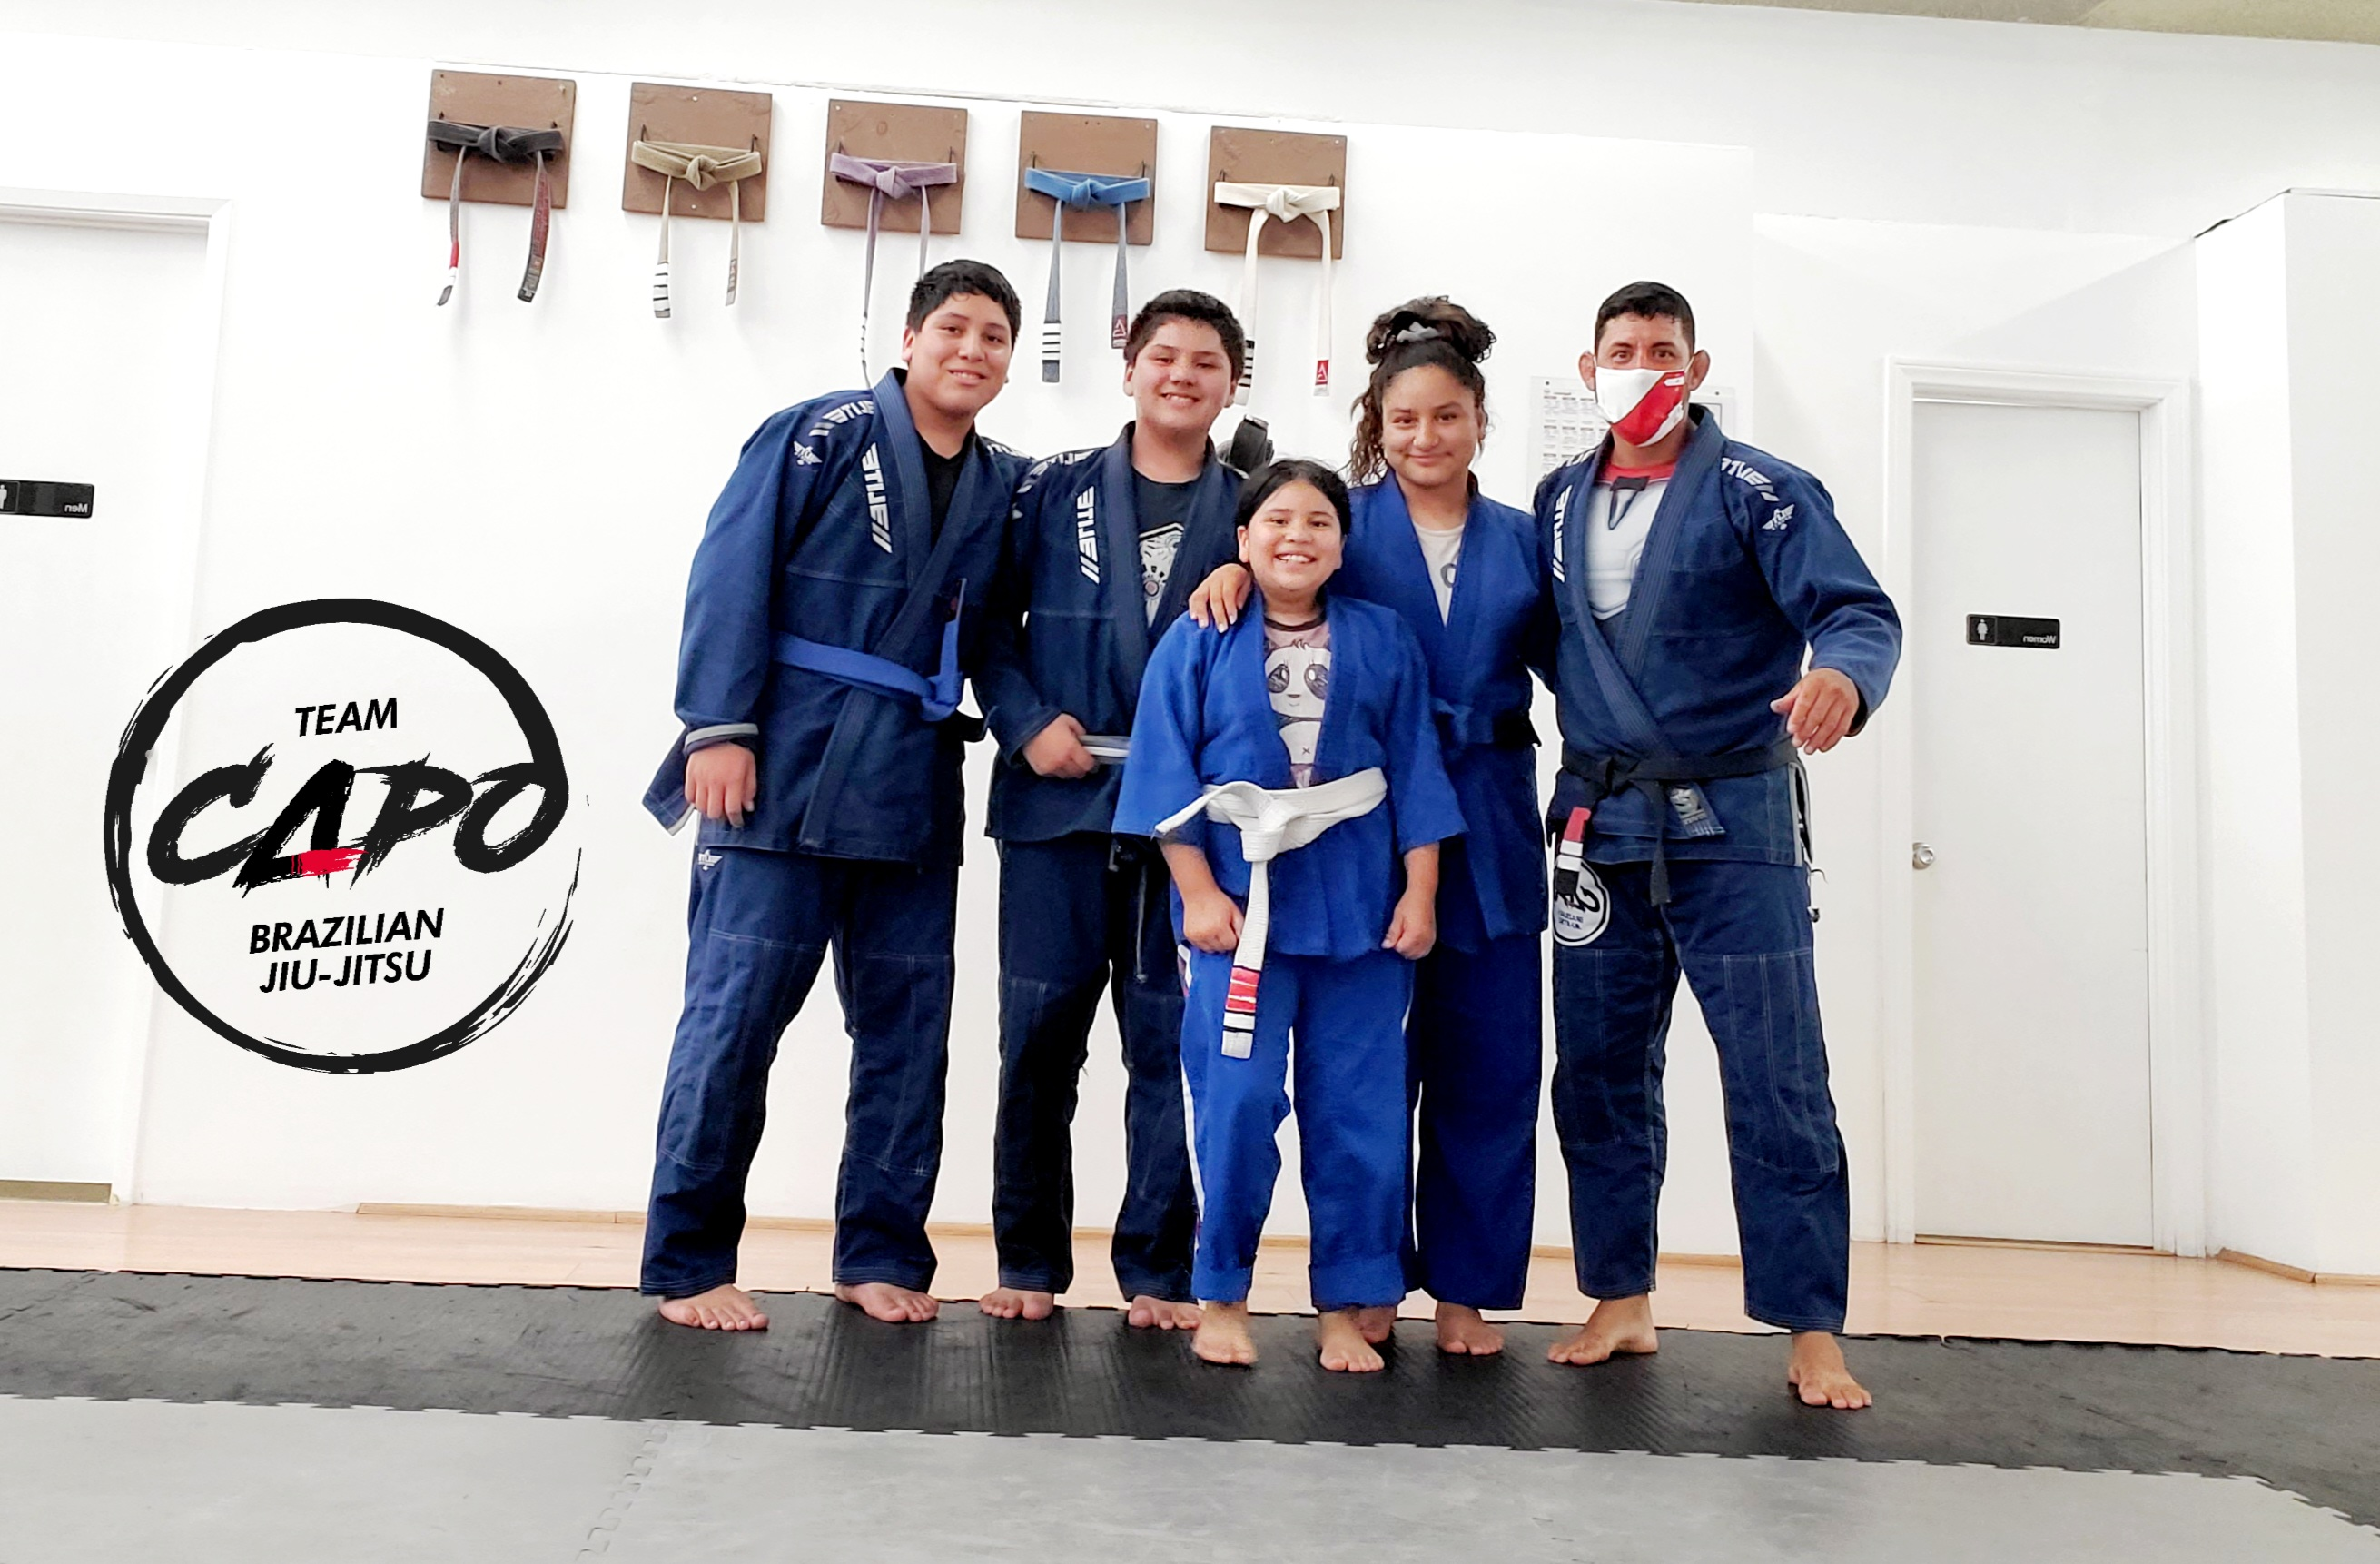 Blue Belts